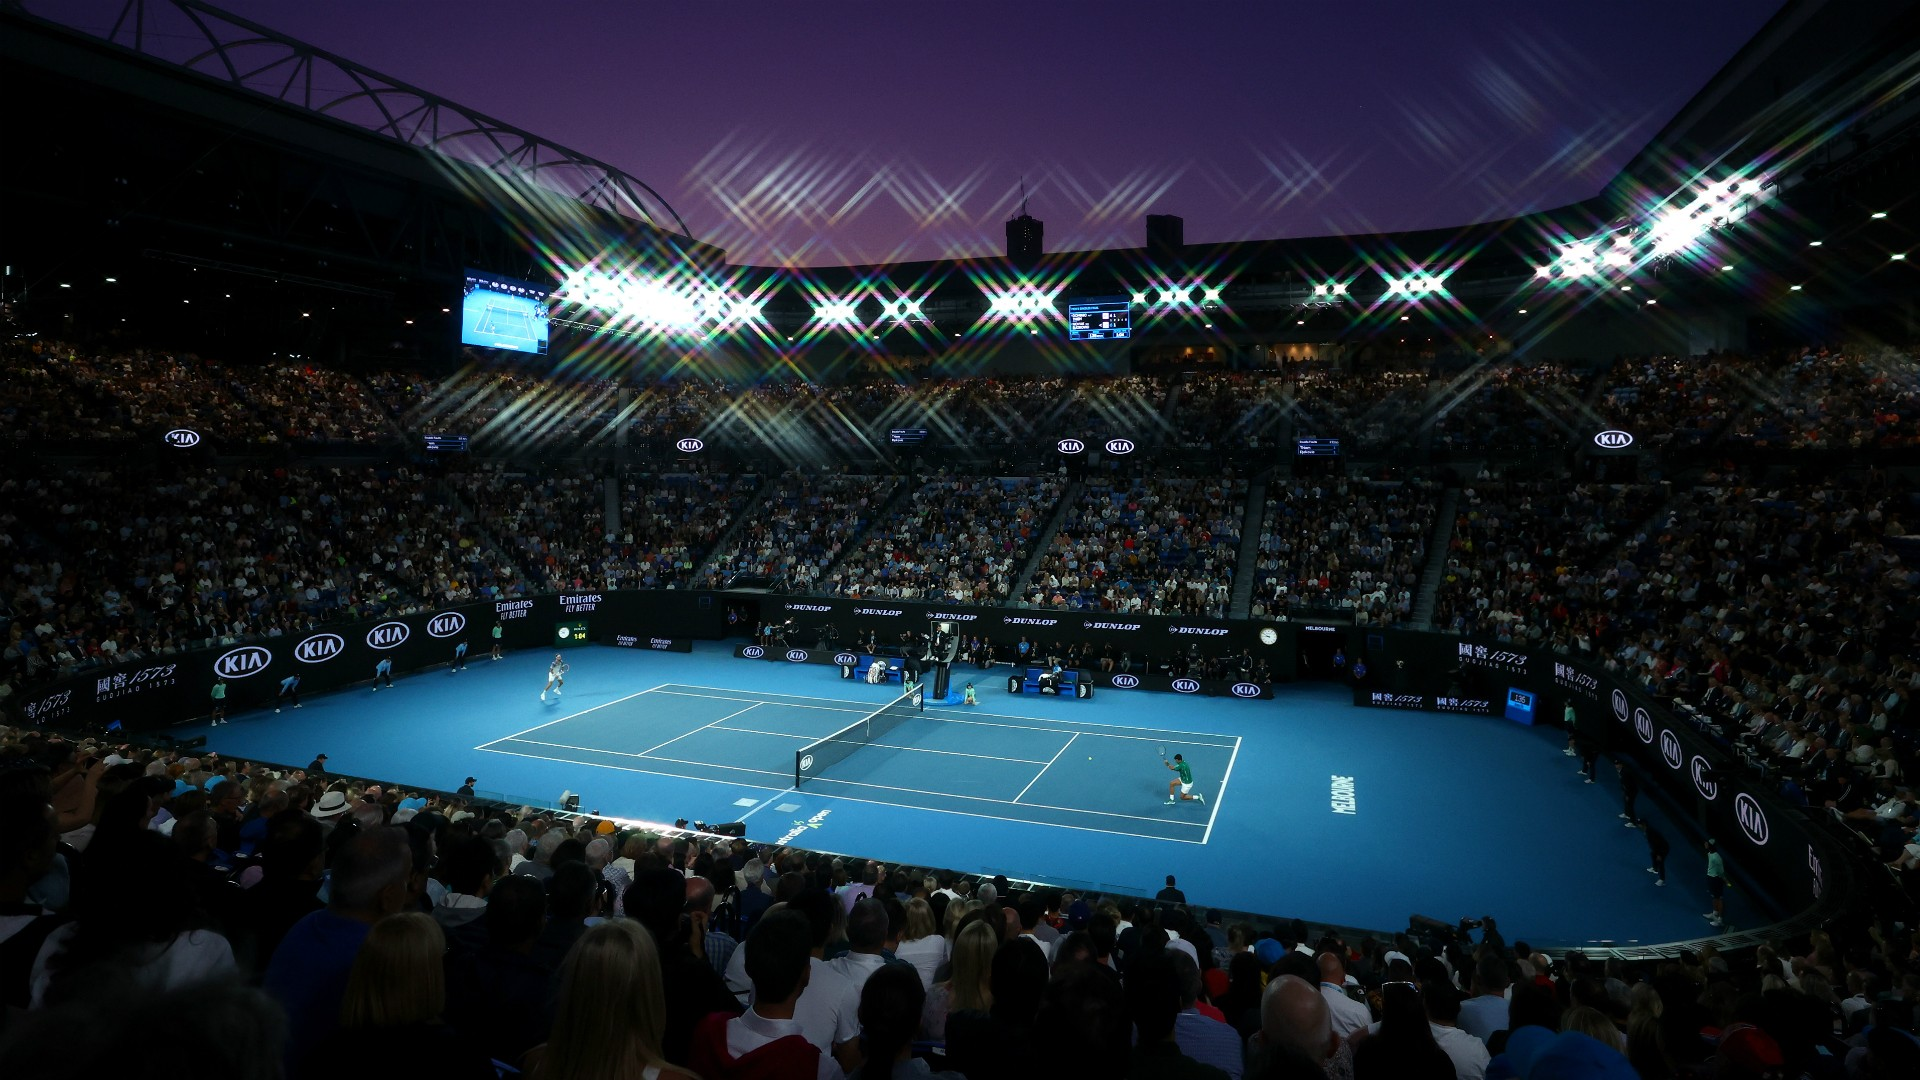 The Rod Laver Arena at Melbourne Park could remain empty in 2021